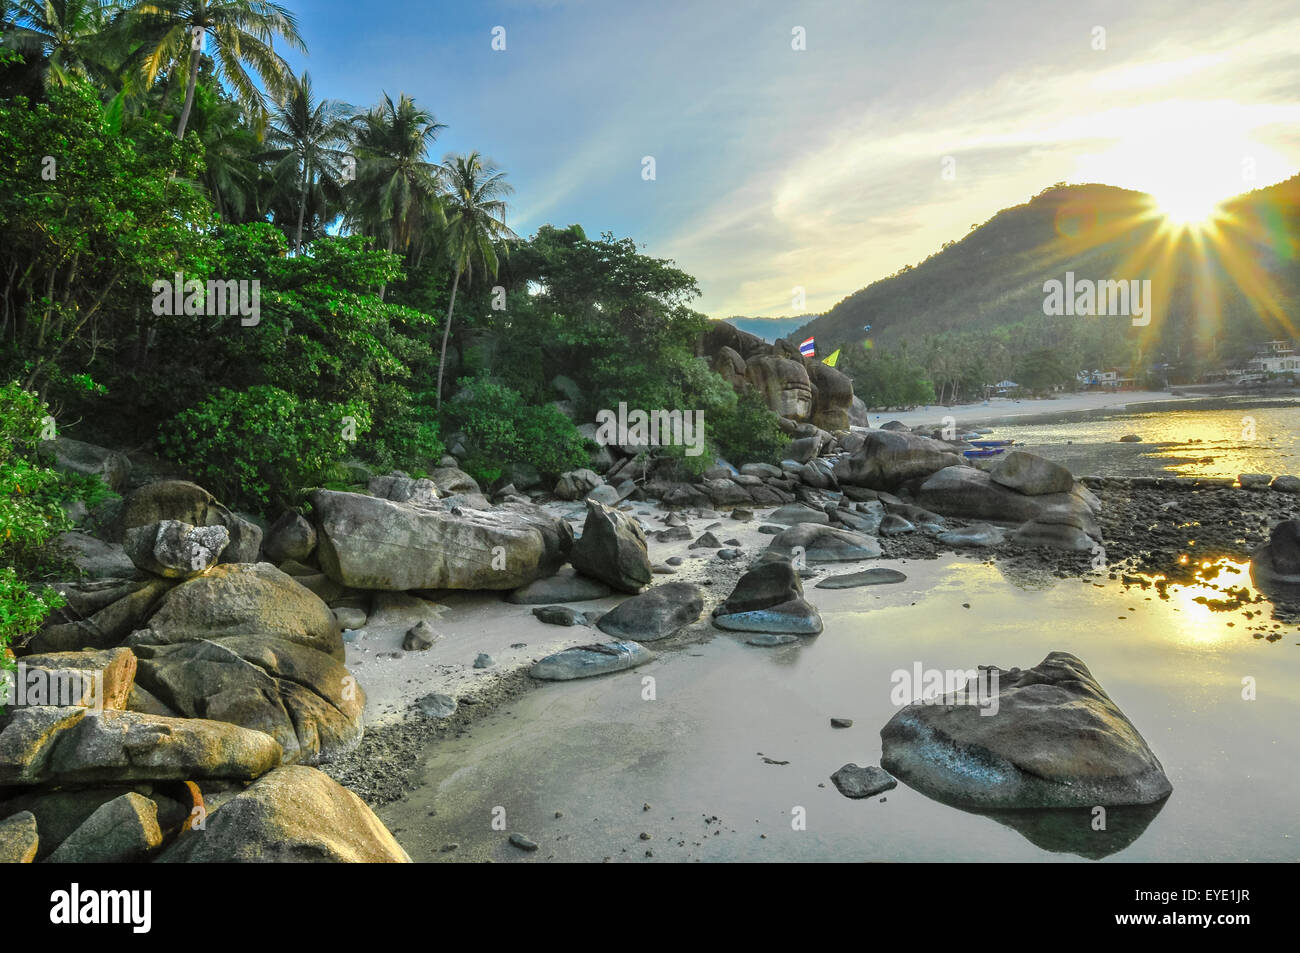 Limestones panoramic tropical beach with coconut palm. Koh Samui, Thailand, Asia - Stock Image